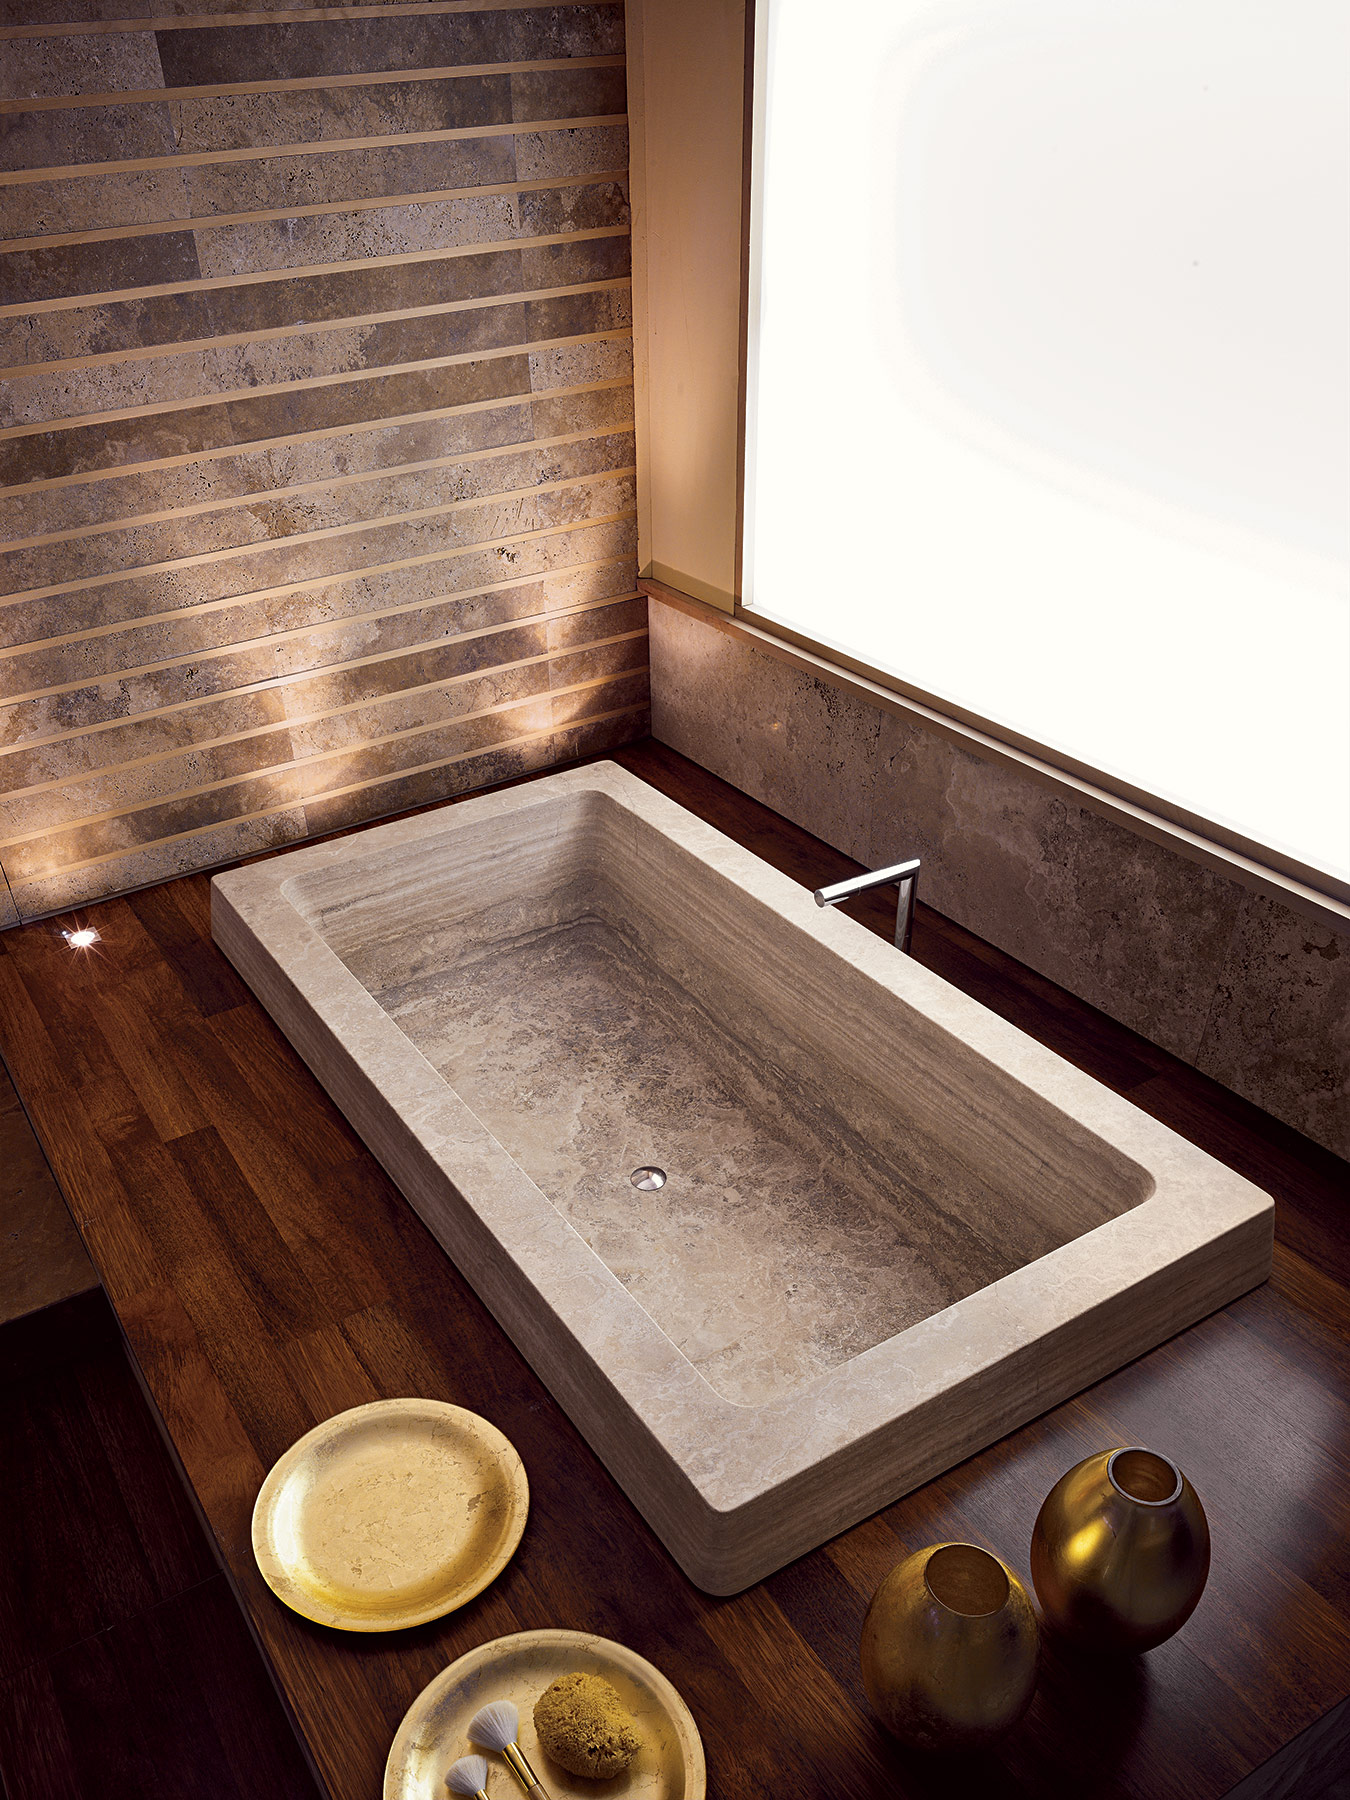 Contemporary Glove Built-In Bathtub